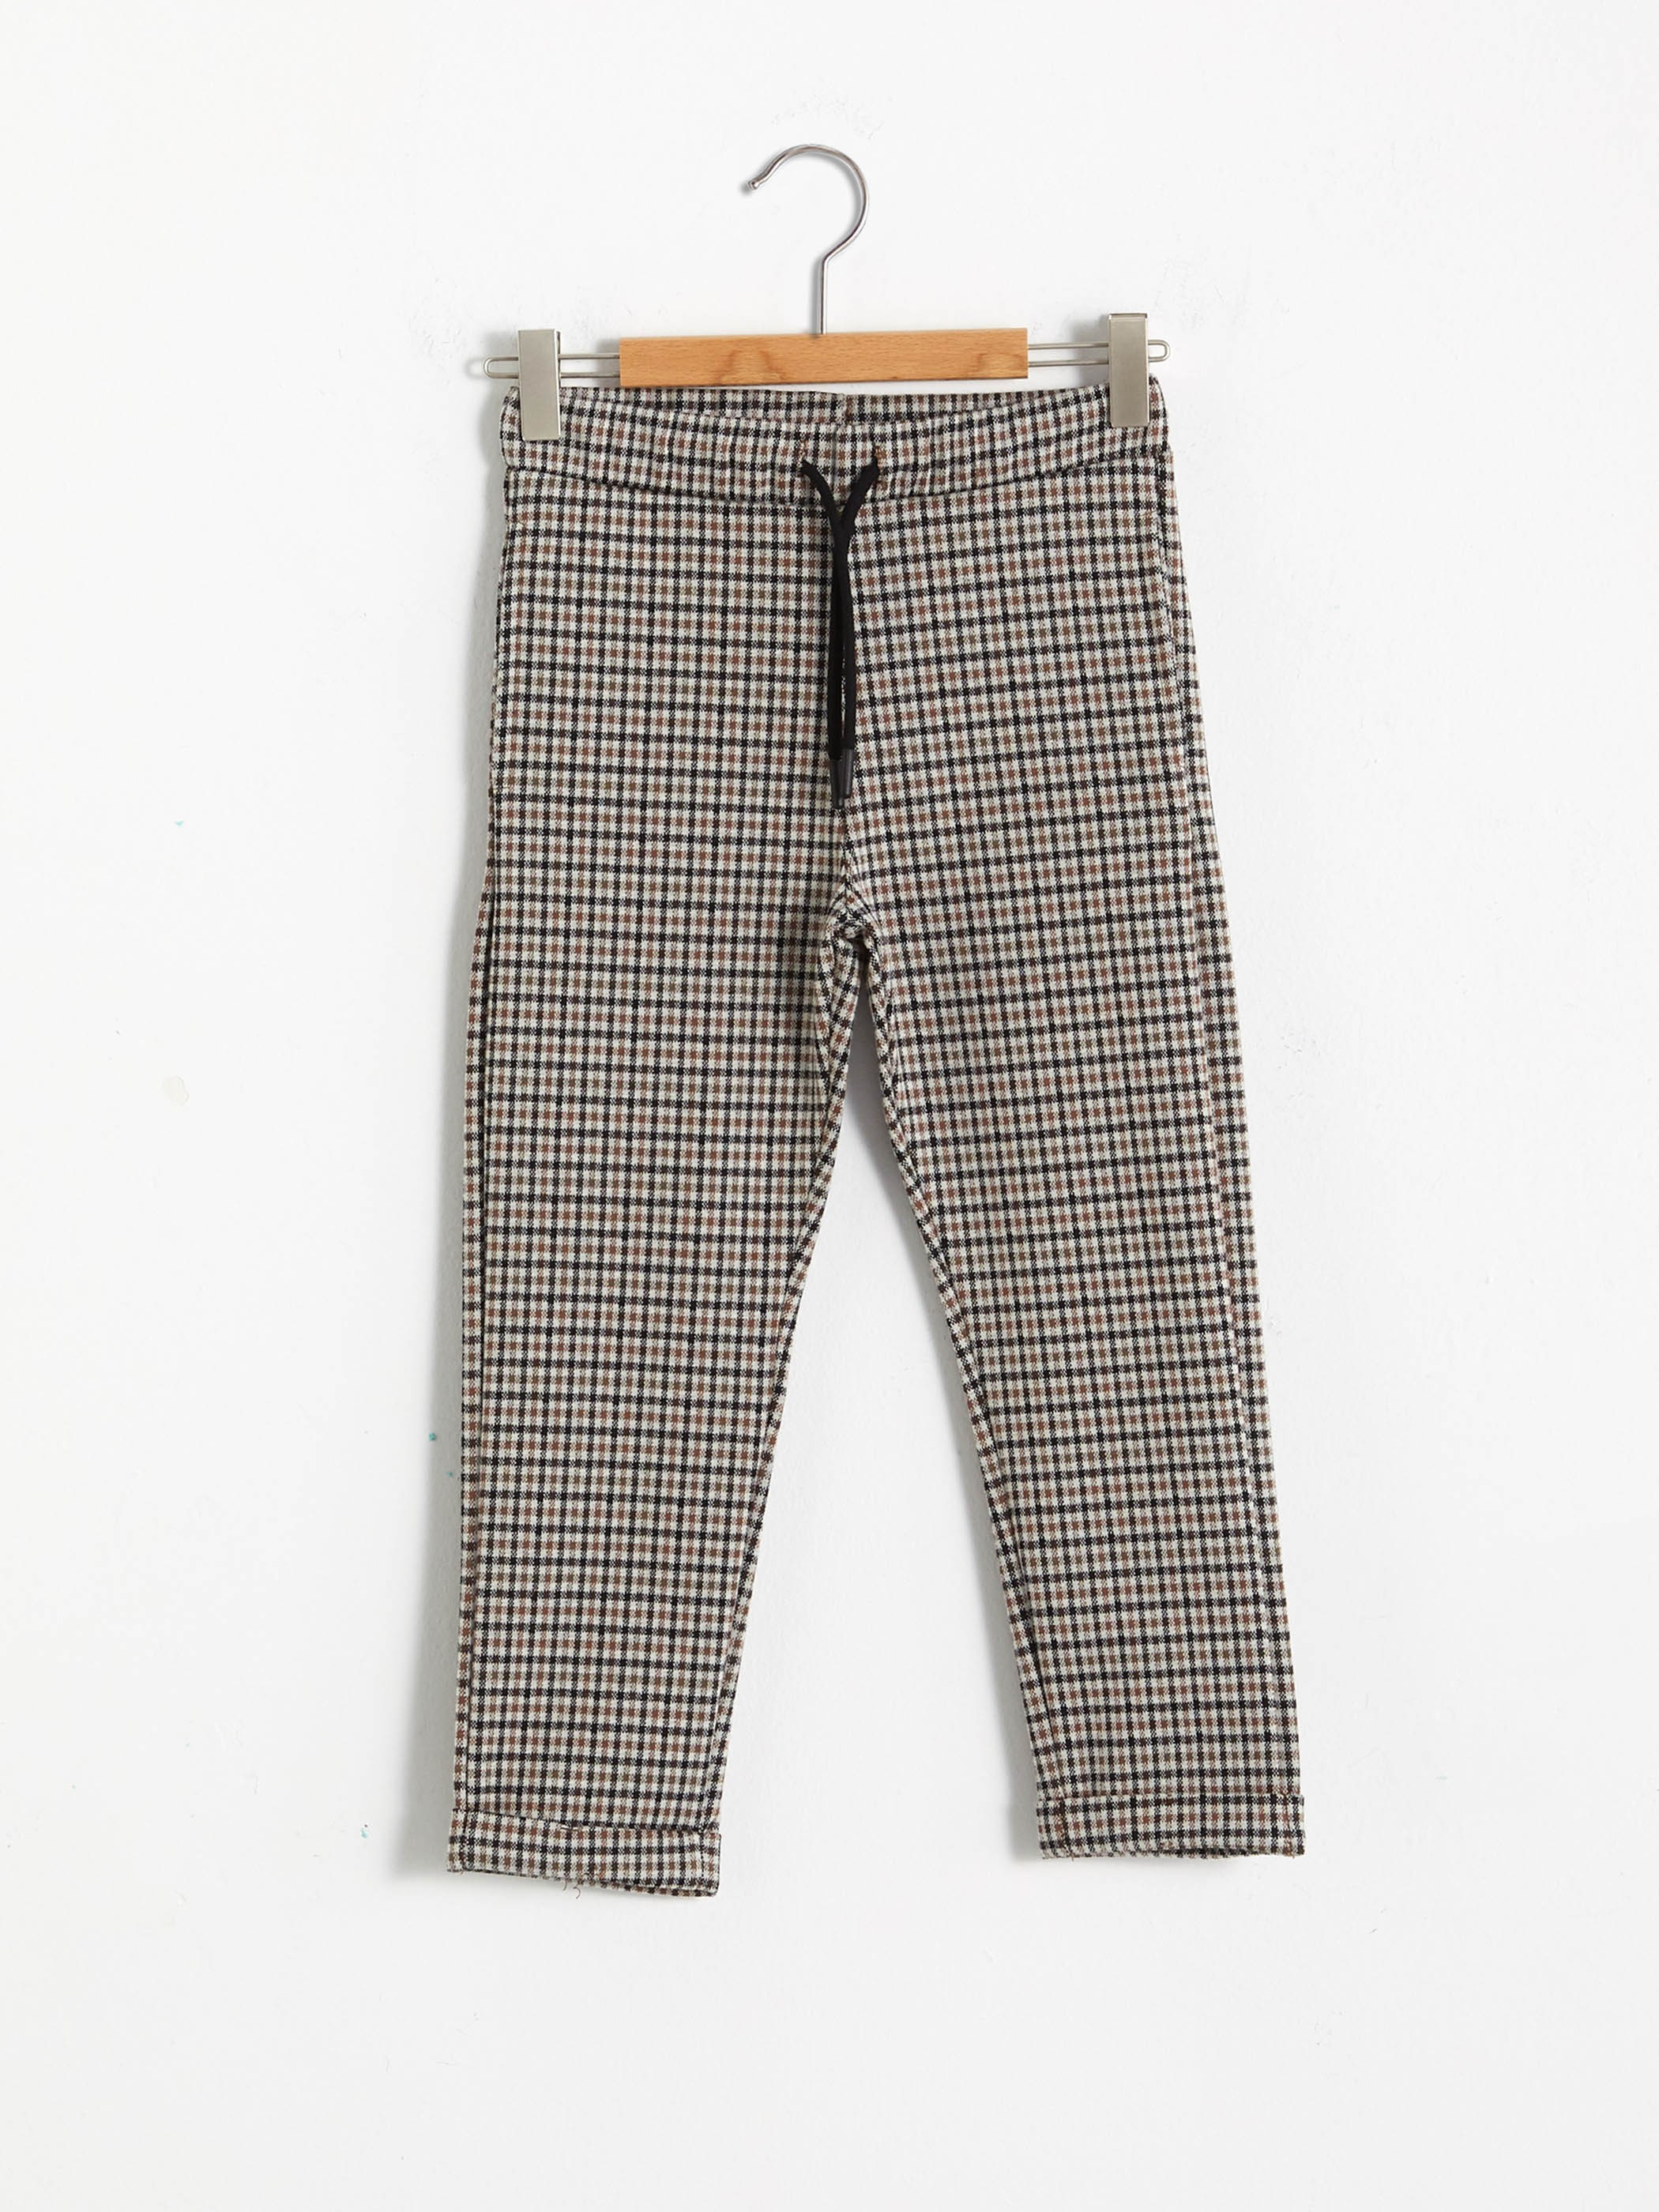 BROWN - Boy's Knitted Trousers - 0WIV17Z4